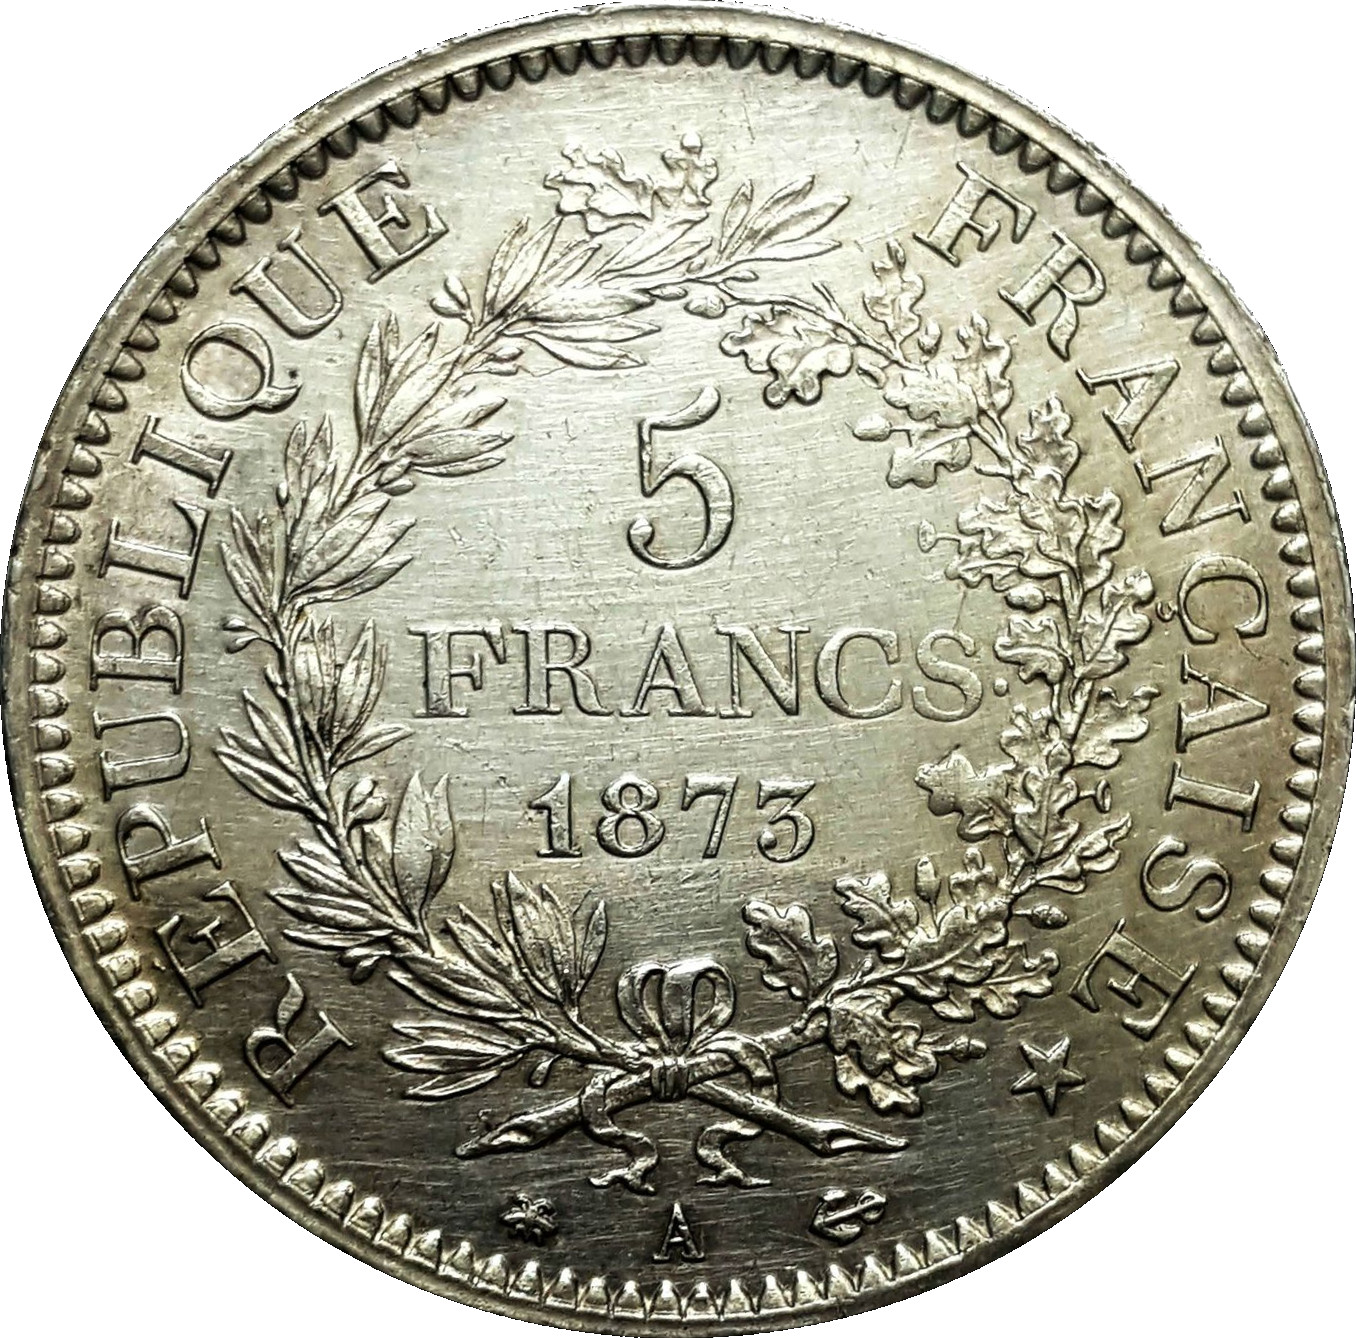 Victor Gadoury Currencies French 2005 Online Discount Publications & Supplies Other Coin & Money Supplies